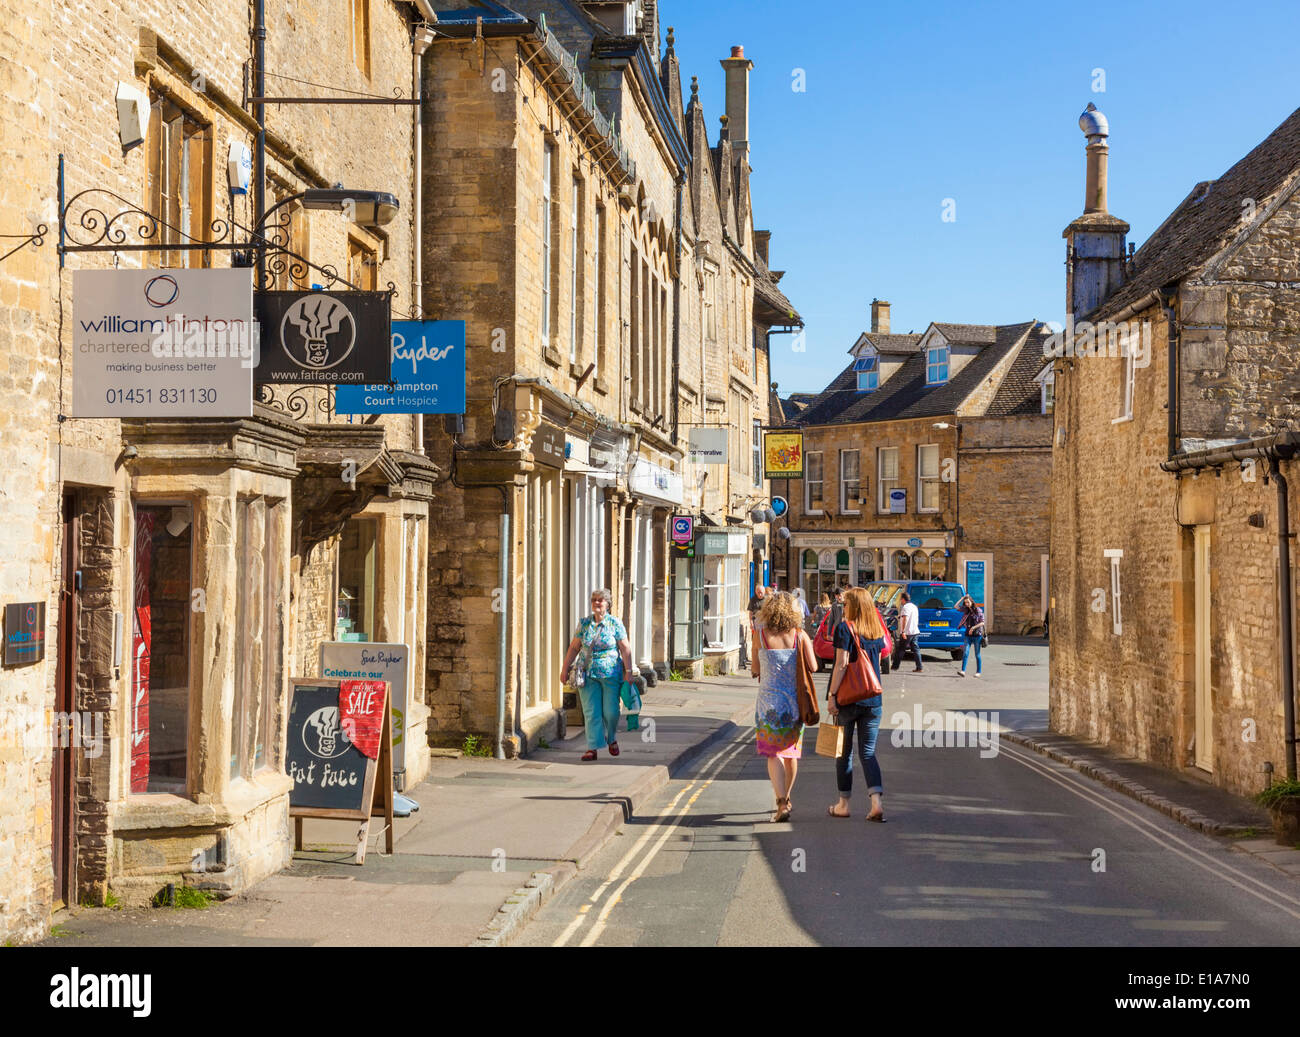 Shopping in the centre of Stow on the Wold, Cotswolds, Gloucesterstershire, England, UK, EU, Europe Stock Photo